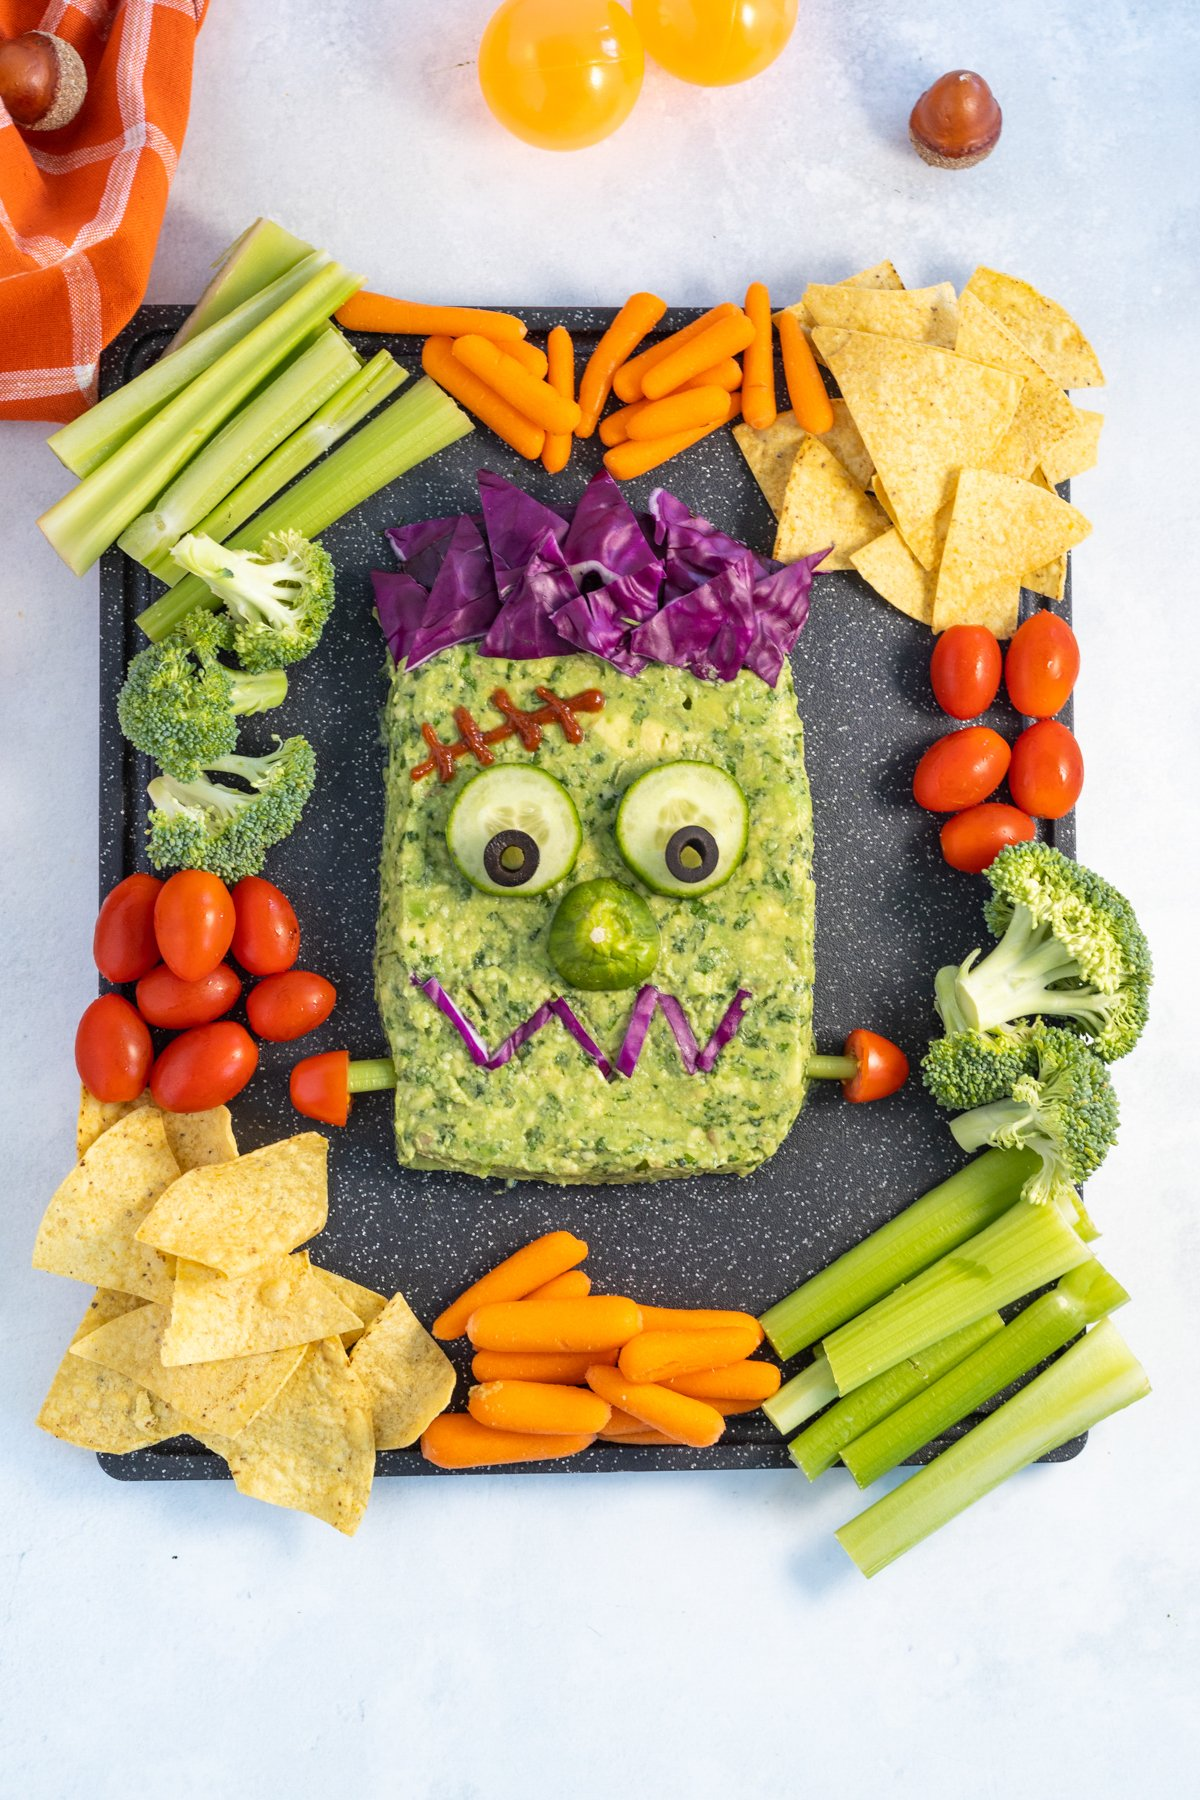 Frankenstein guacamole surrounded by chips, veggies, and more